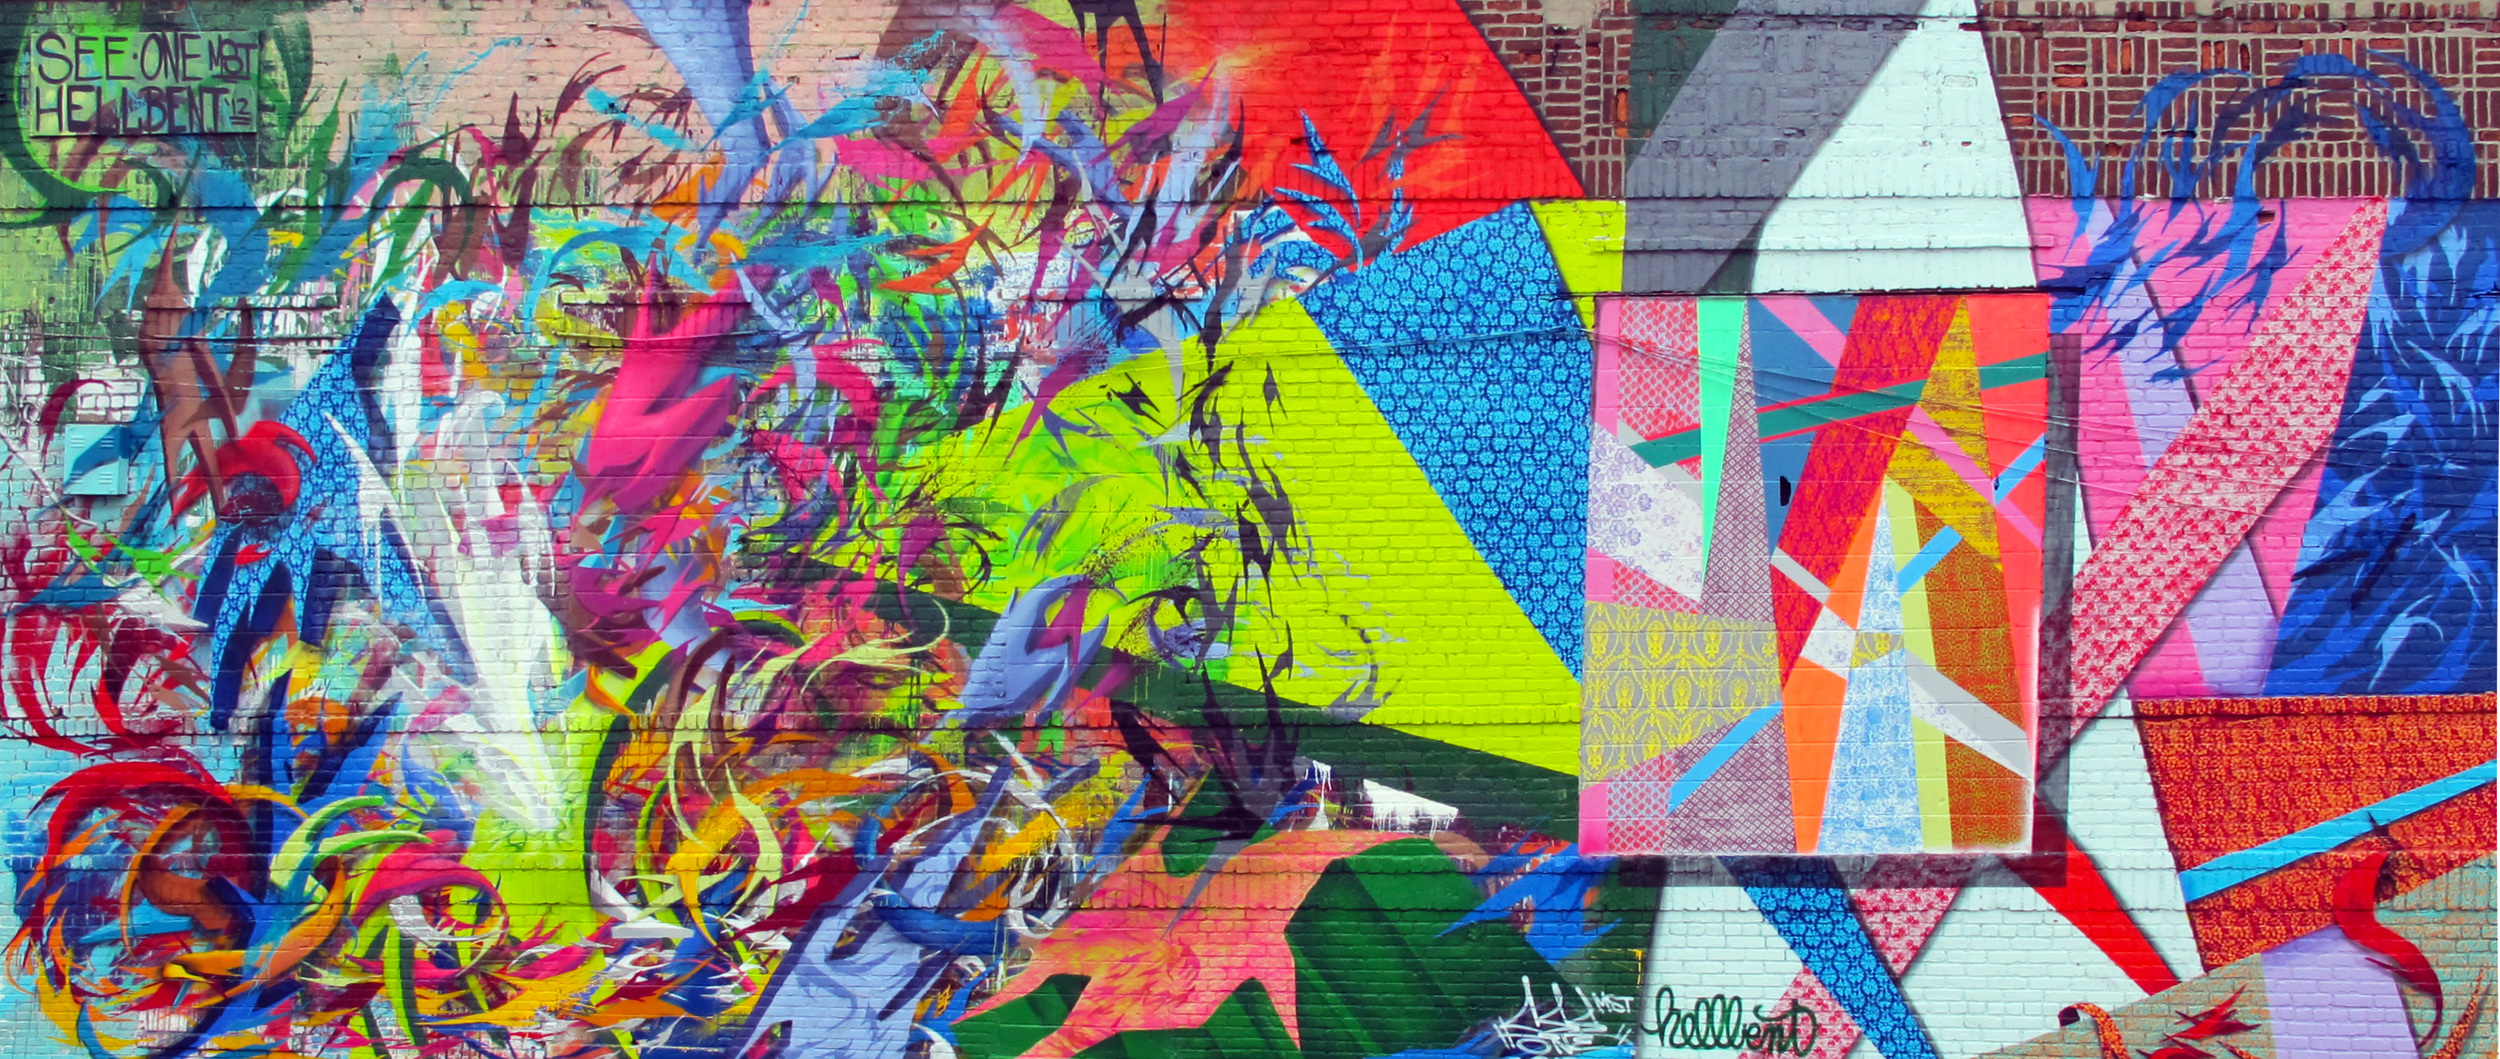 Collab with SeeOne for Bushwick Collective